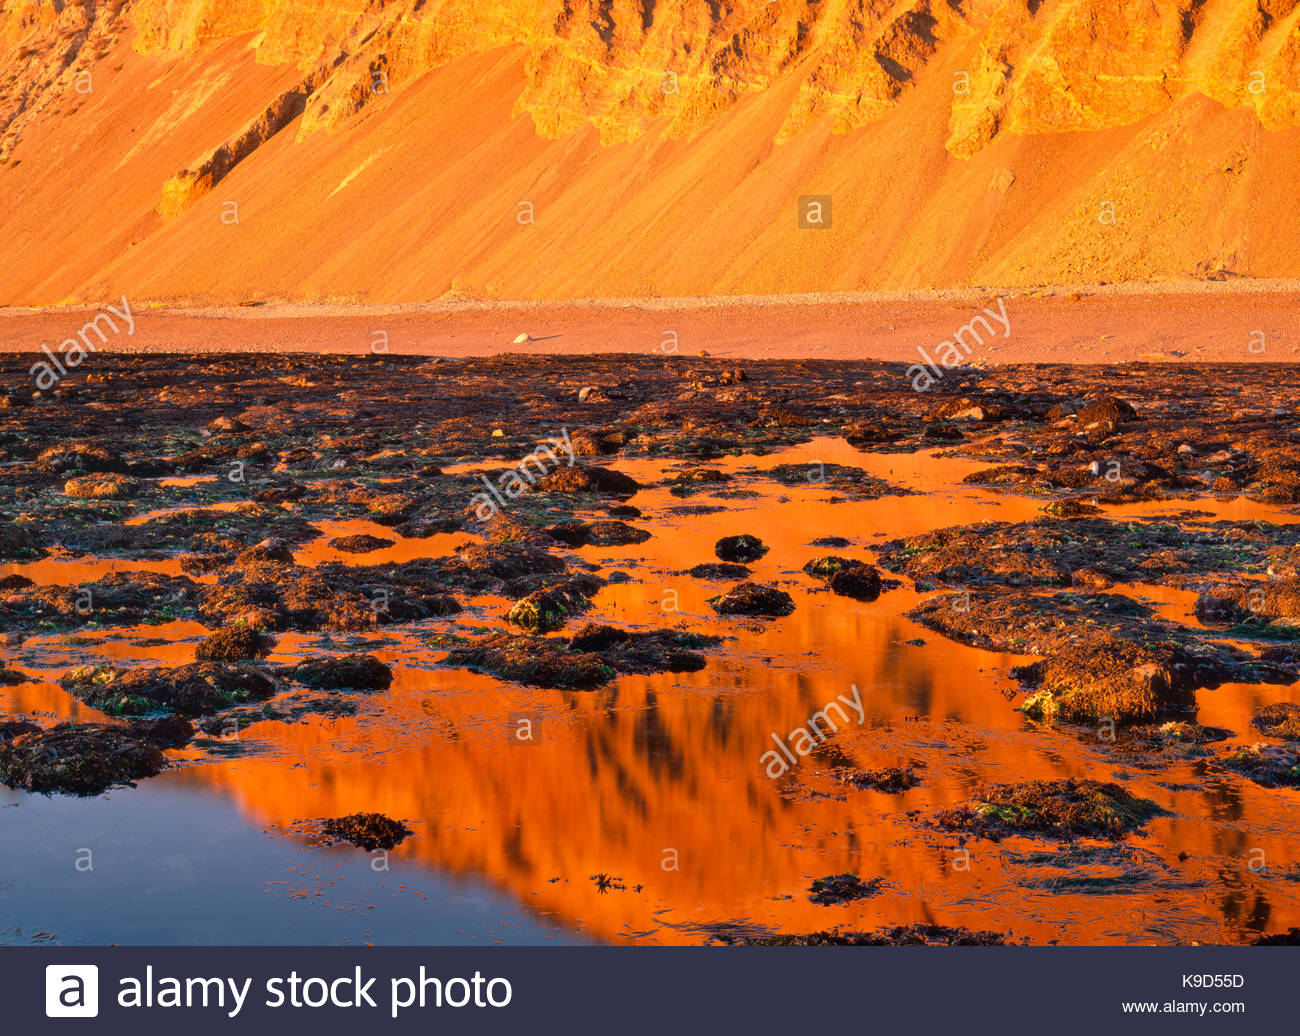 Sunset Glow on Cliffs and Tidepools, Point Reyes National Seashore, California - Stock Image